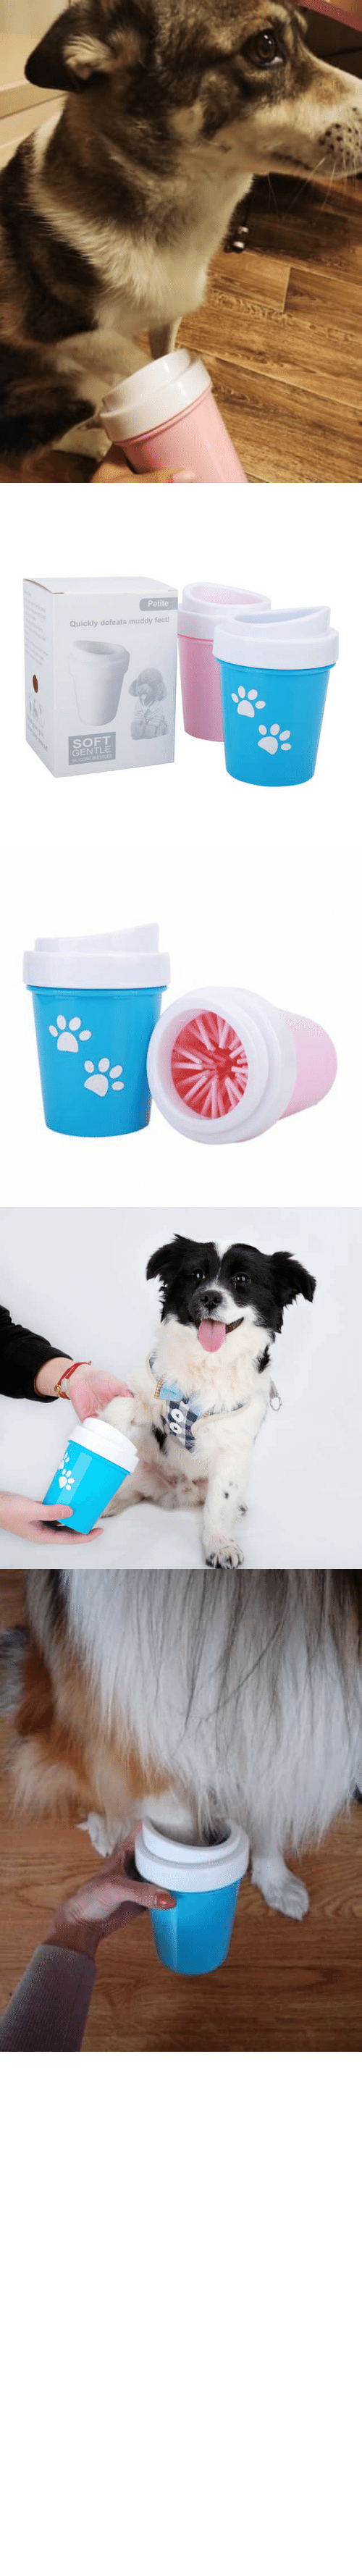 "code: awesomage:   PAW CLEANER     Now your best friend can have all the muddy dirty fun he wants without bringing it all into your home or vehicle.    30% OFF plus Free Worldwide Shipping with coupon code ""CUDDLING""    All funds gathered will be donated for rescue dog shelters    SUPPORTS US NOW, ORDER AND SHARE OUR CAUSE!https://www.doggiemon.com/products/paw-cleaner"